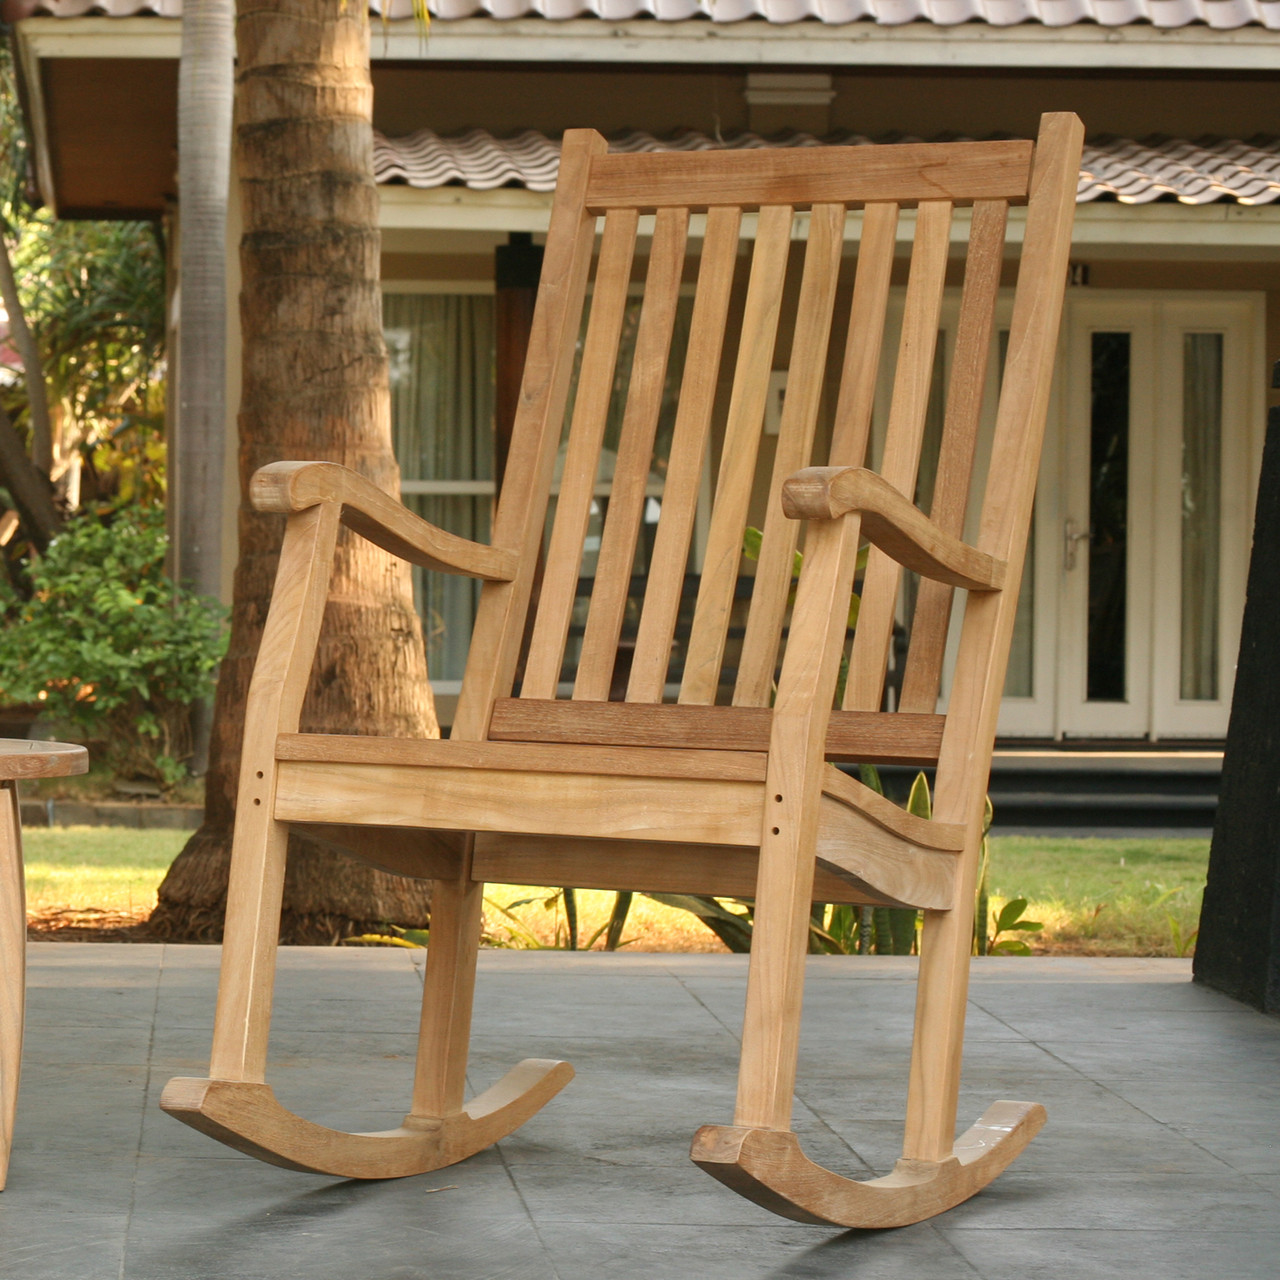 Outdoor Rocking Chair Set Tortuga Outdoor Jakarta Teak Rocking Chairs Set Of 2